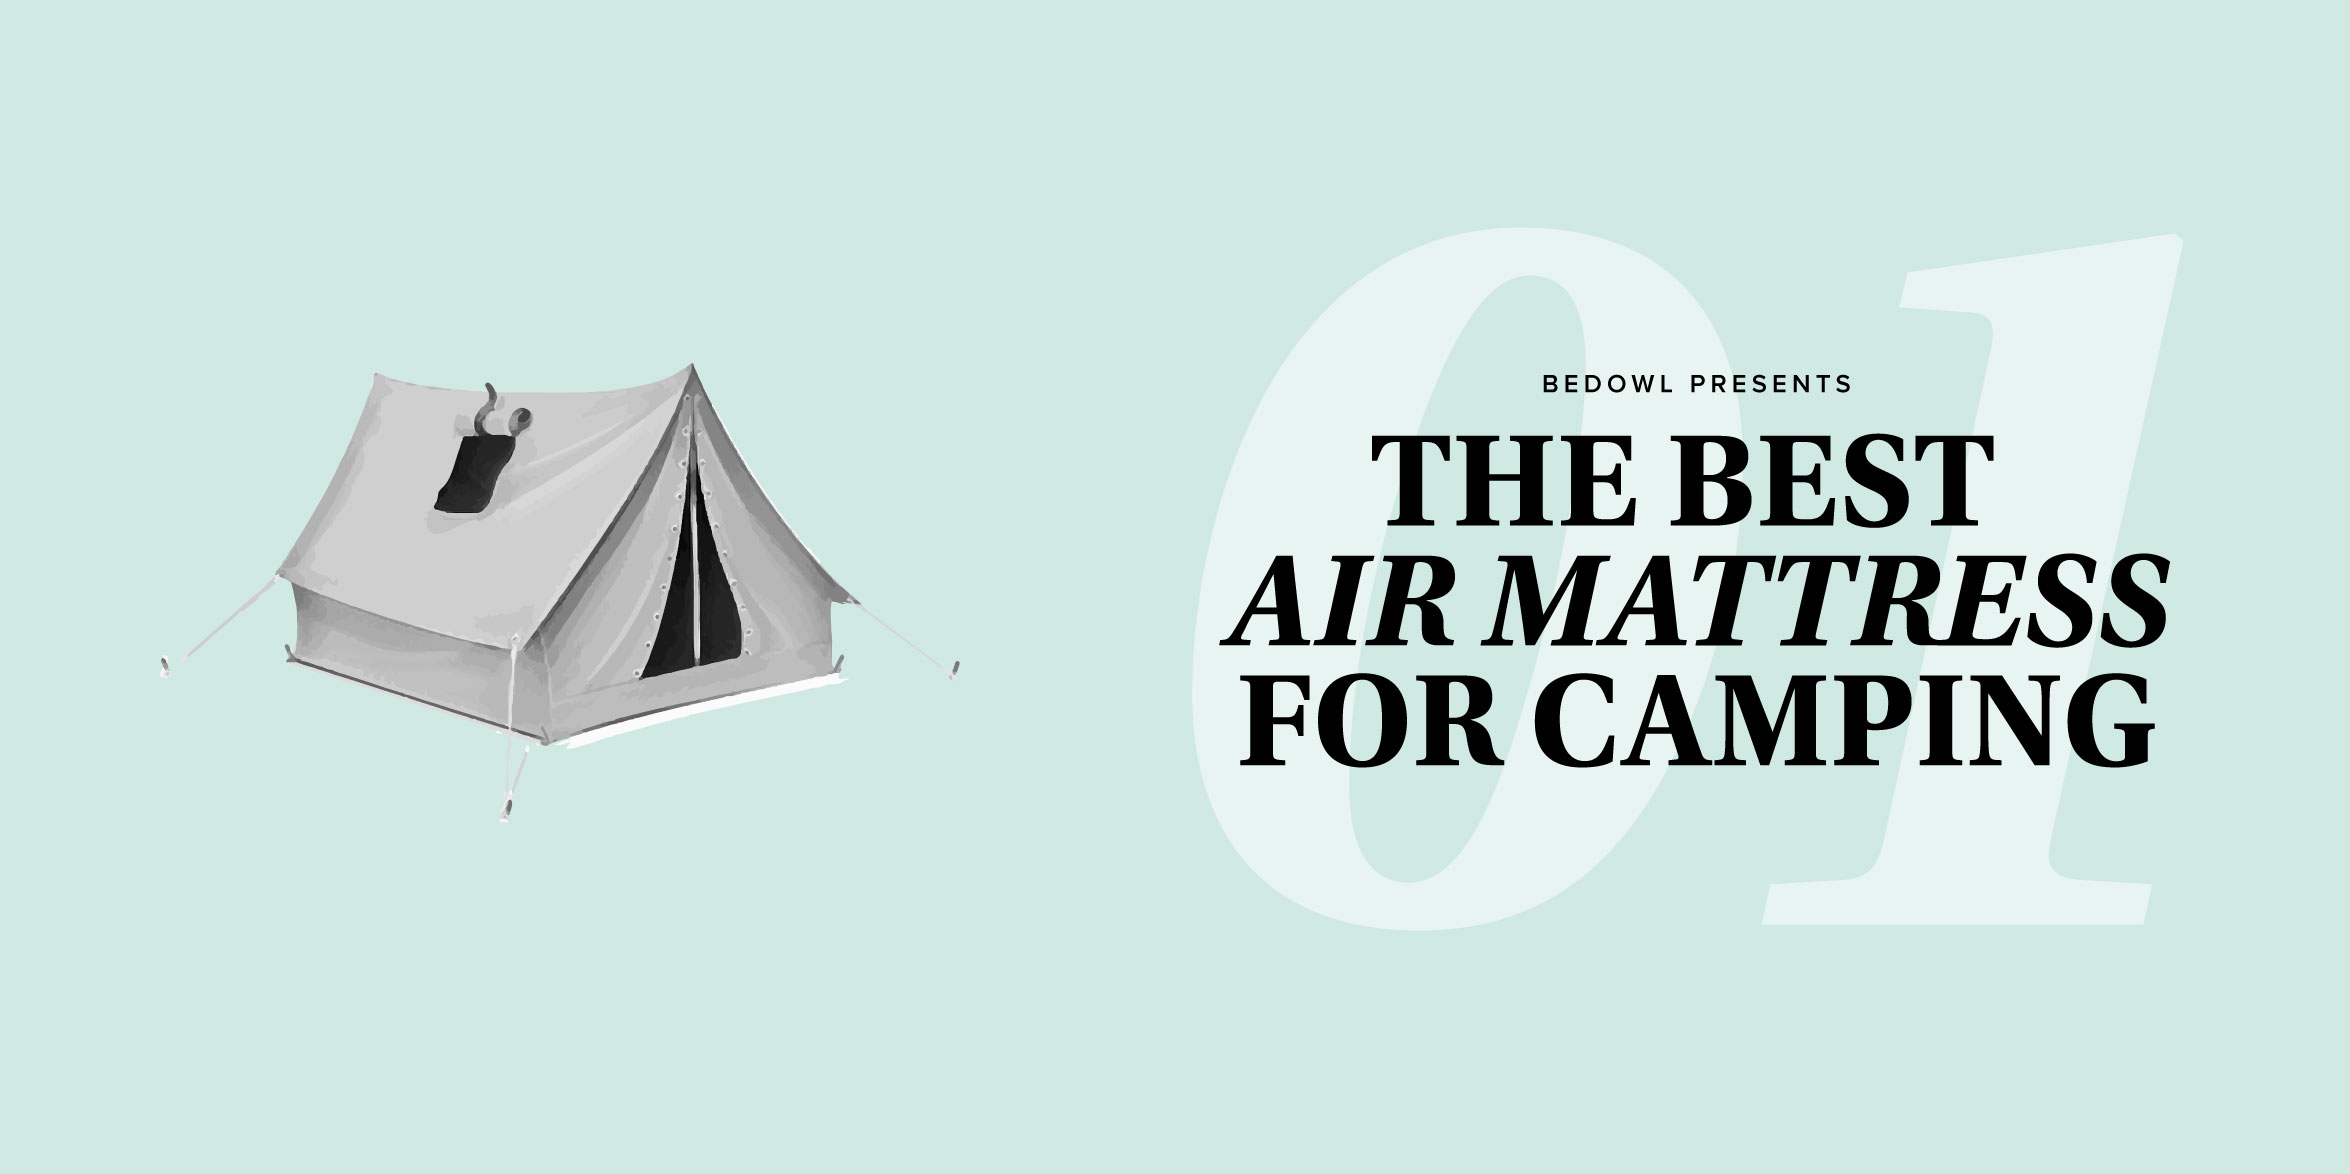 the best air mattress for camping by bedowl.